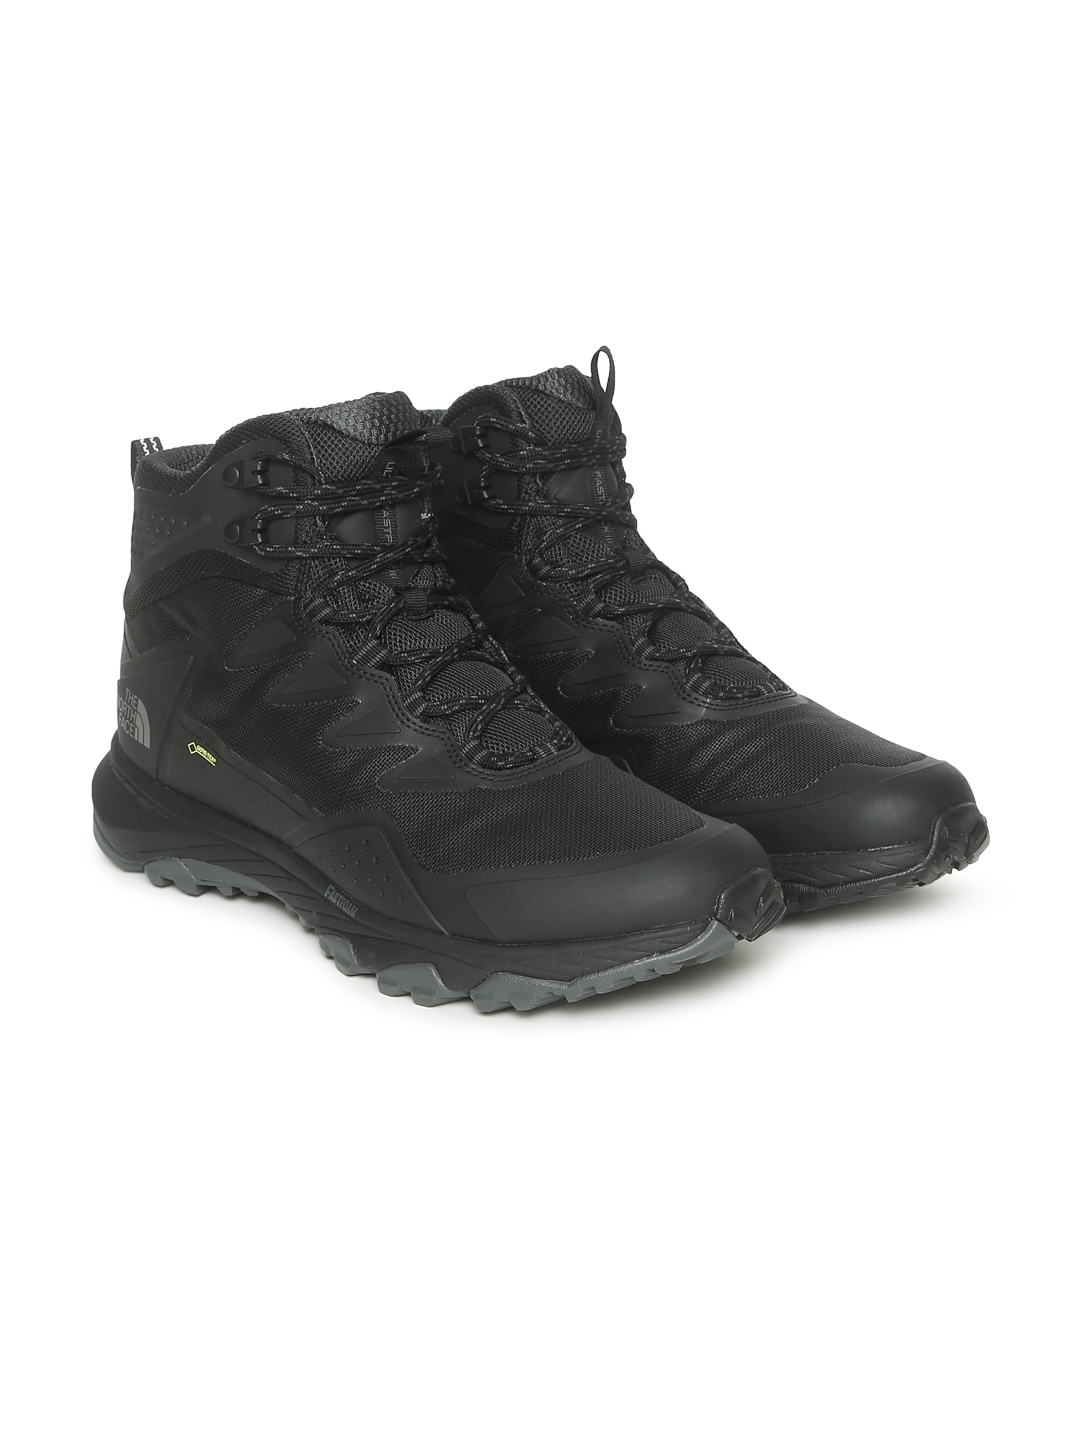 7859cb19a The North Face Men Black Solid Ultra Fastpack III GTX High-Top Waterproof  Hiking Boots